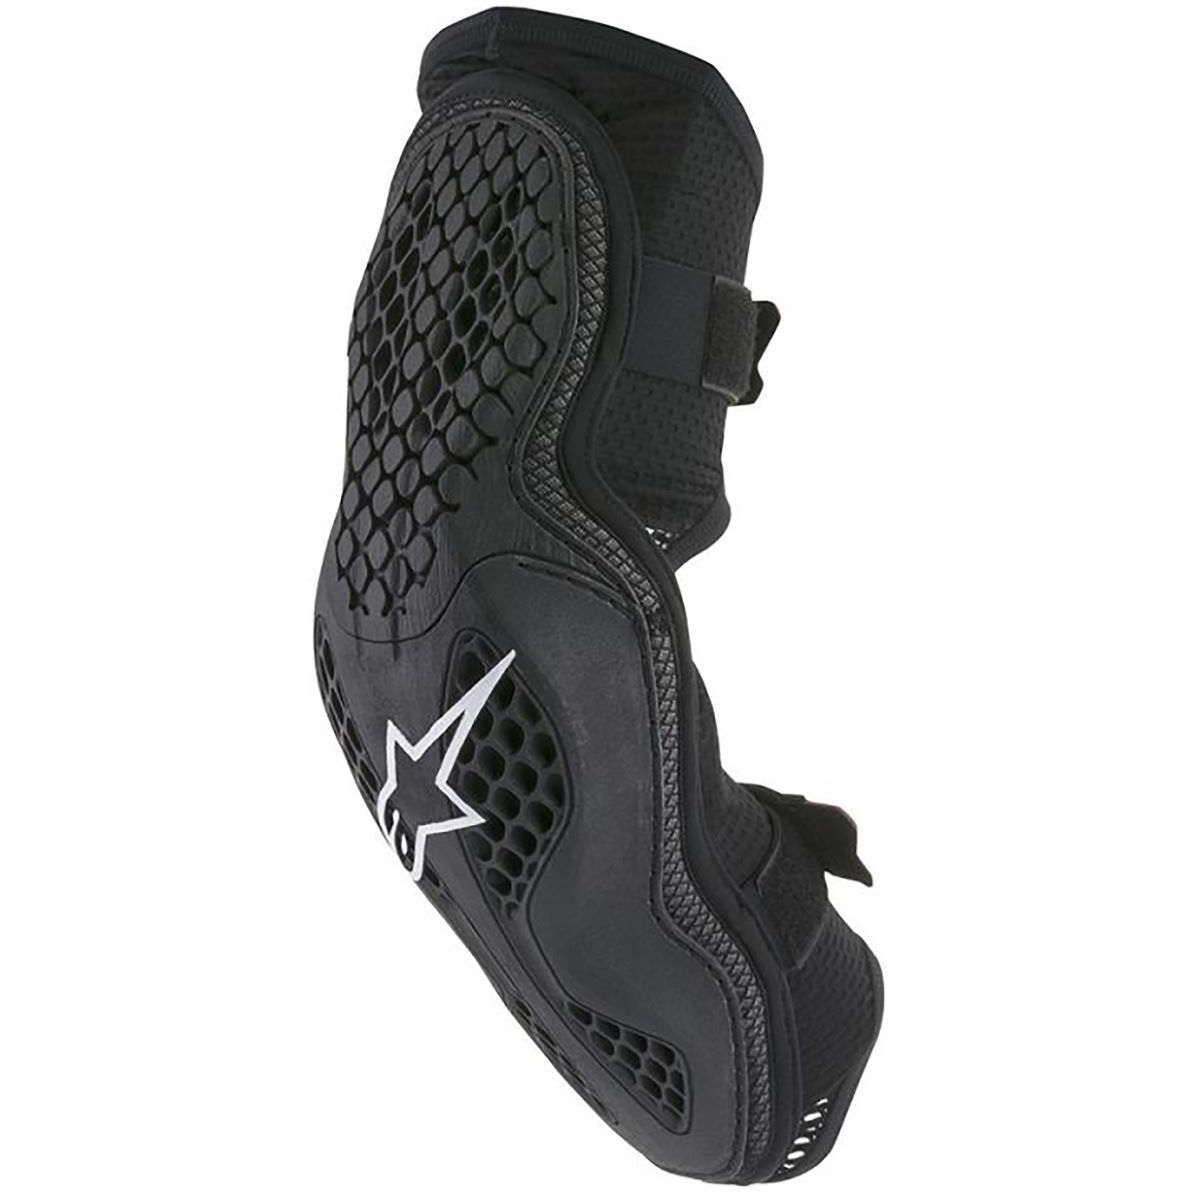 alpinestars Alpinestars Sequence Elbow Protector   Elbow Pads